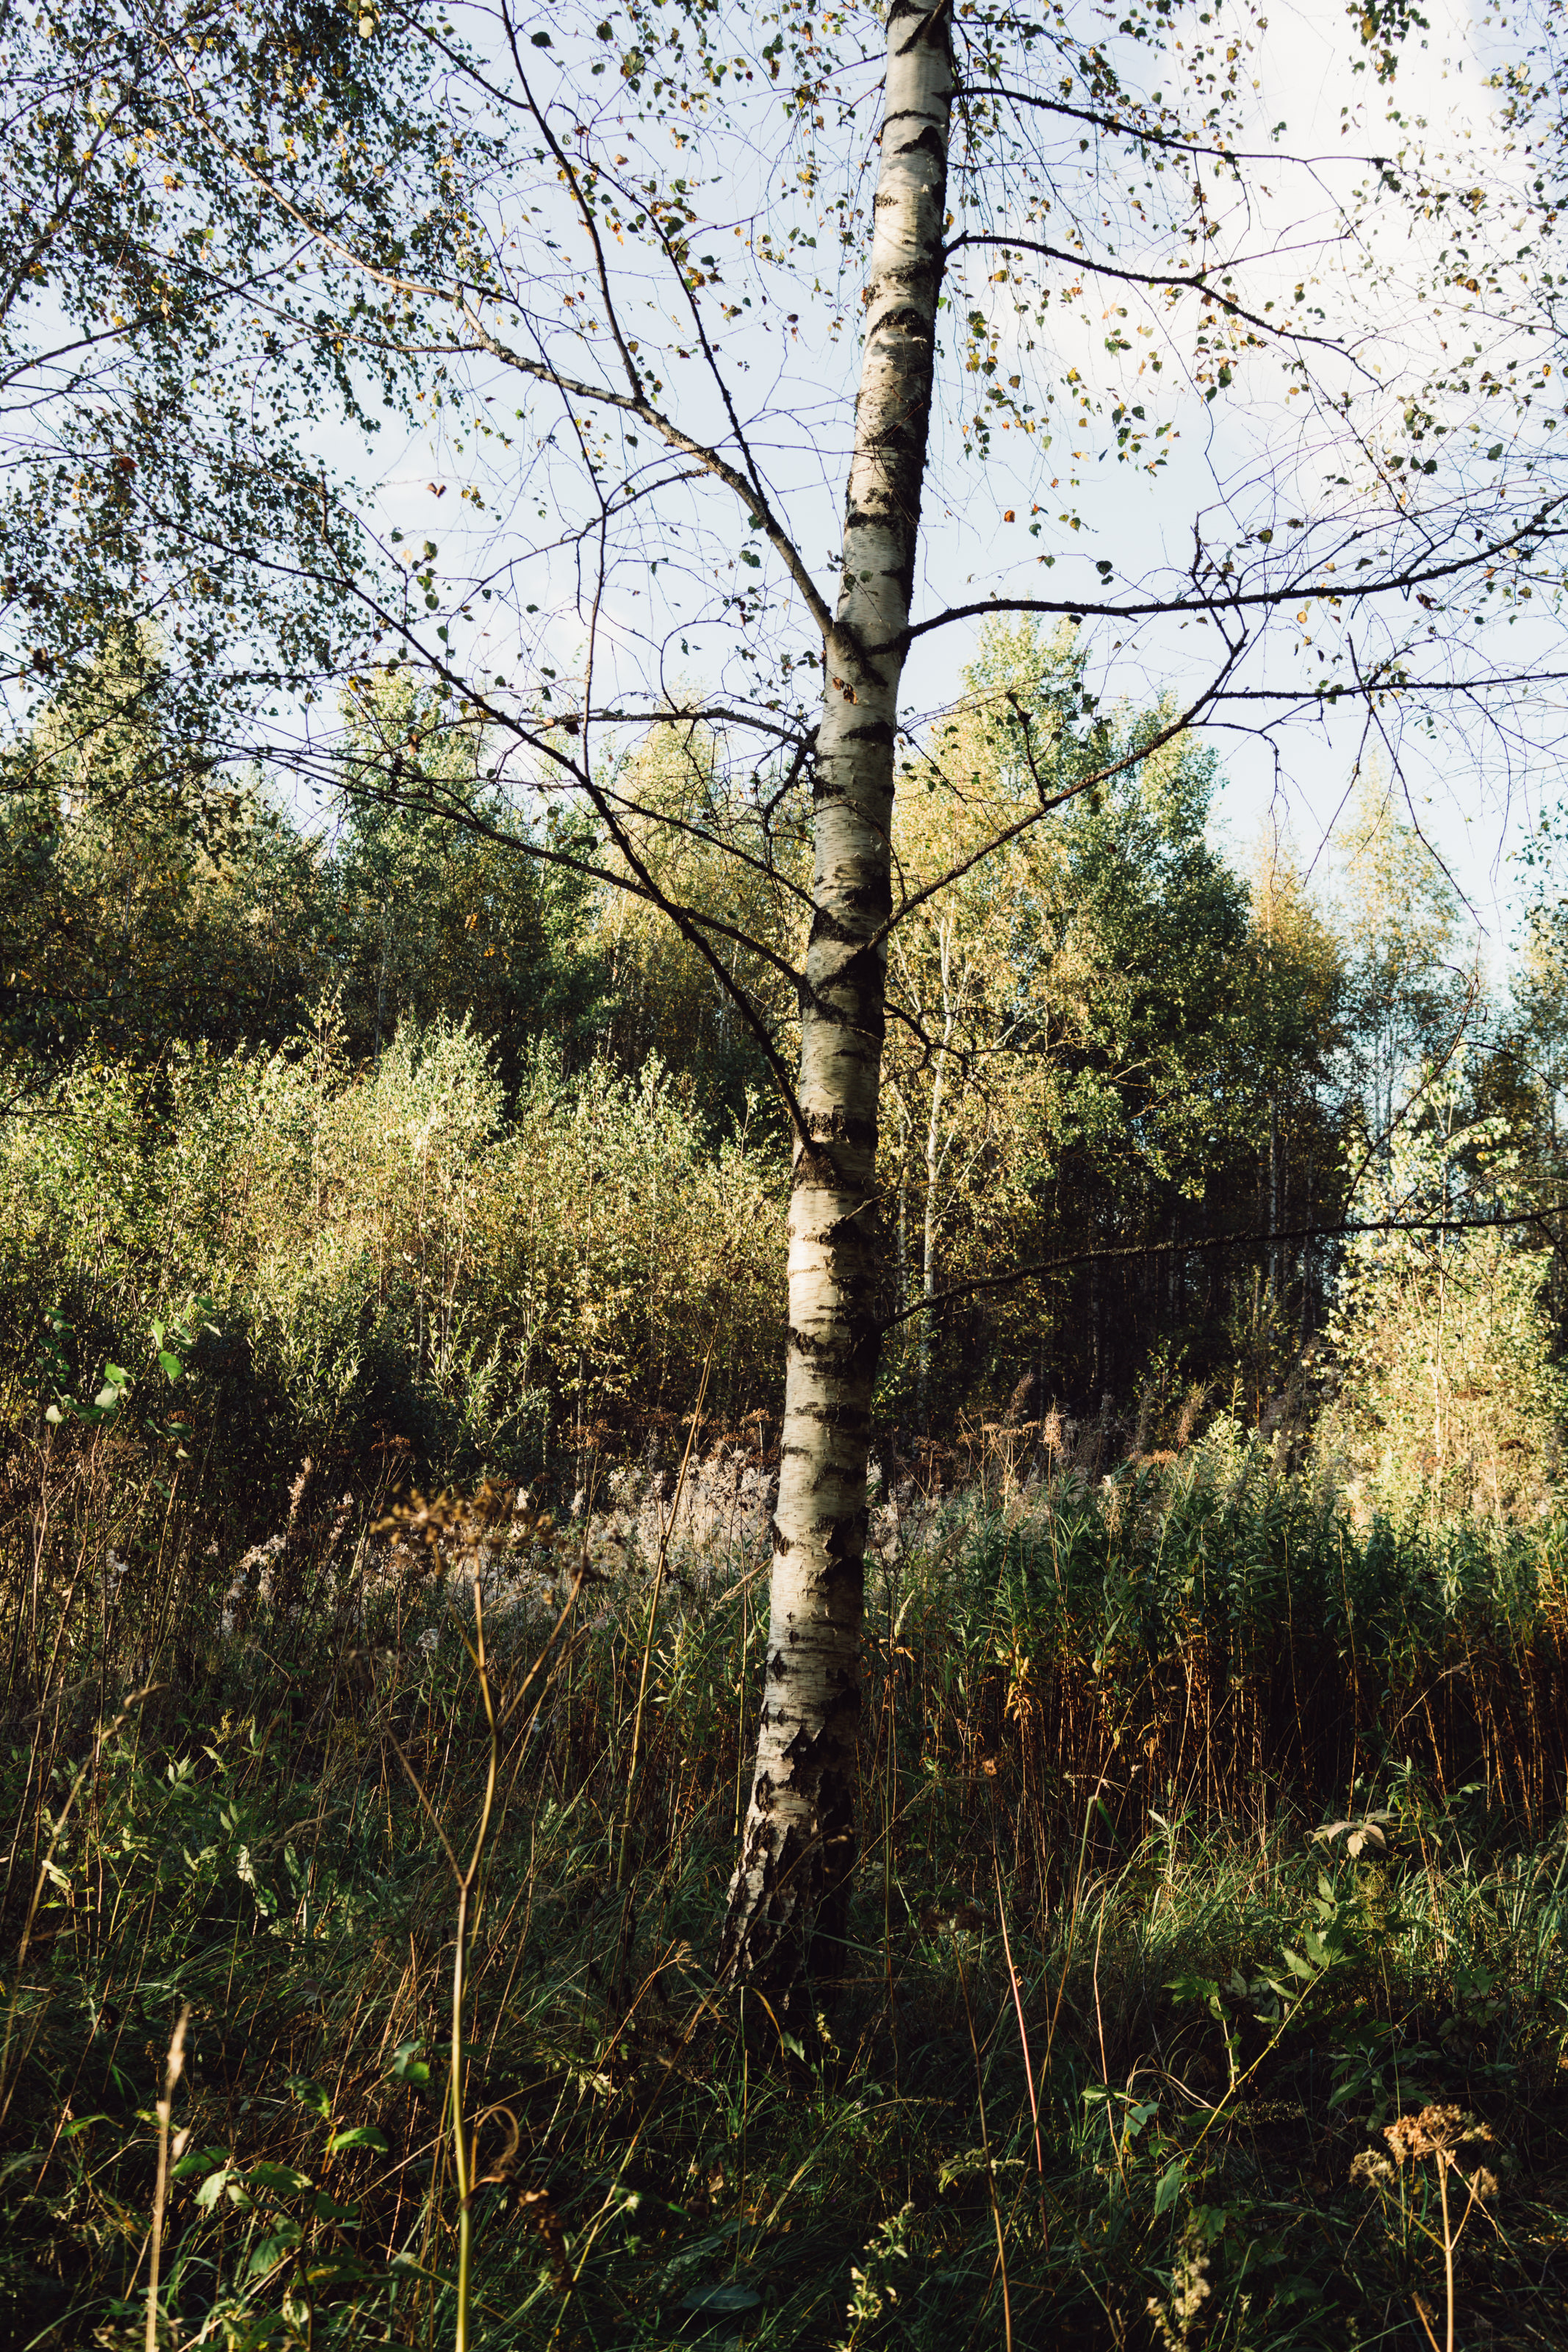 The White Birch, which Armillaria loves to infect.